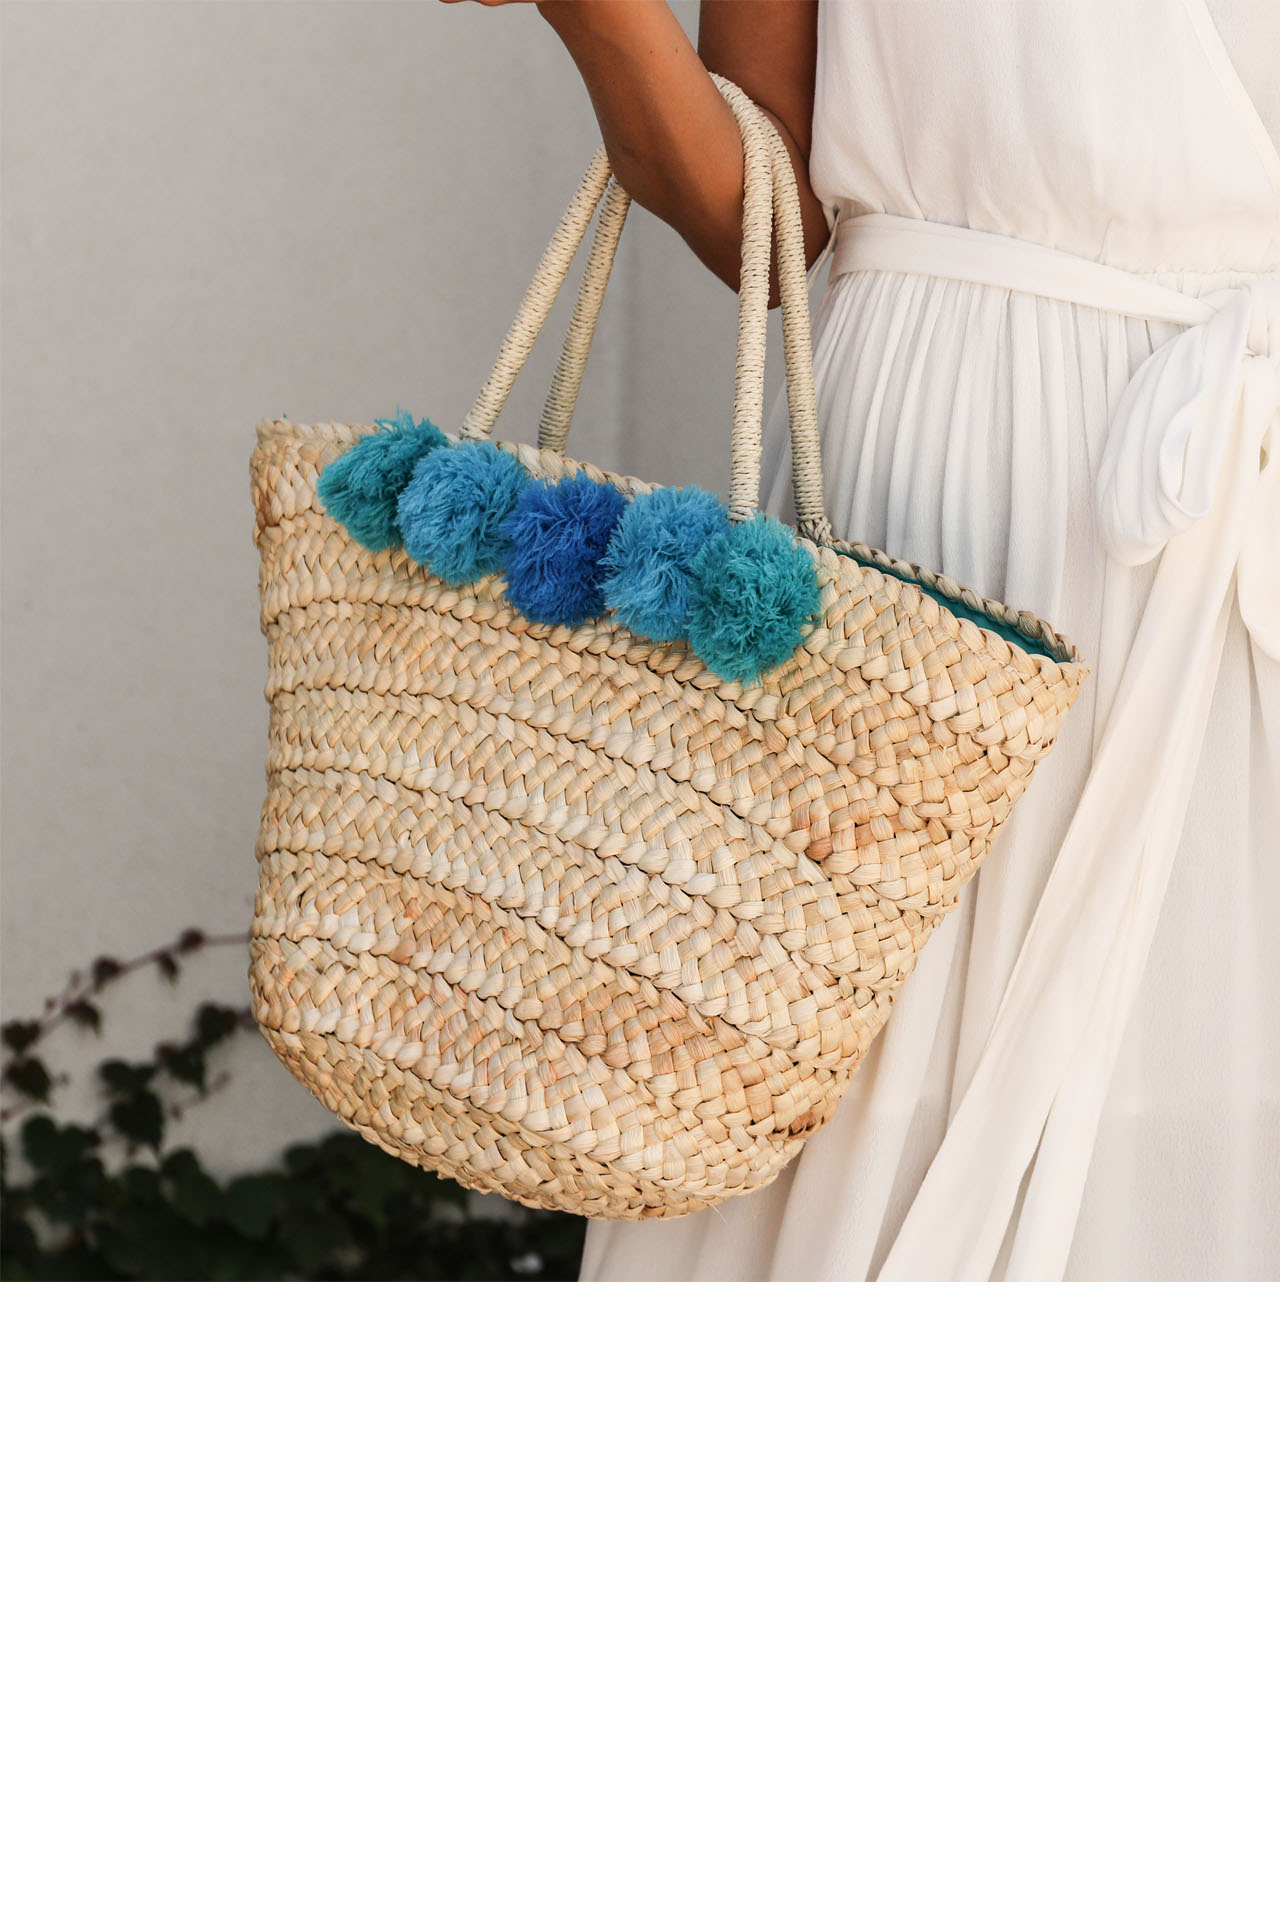 Tan Straw Tote Bag with Blue Monochromatic Pom Details